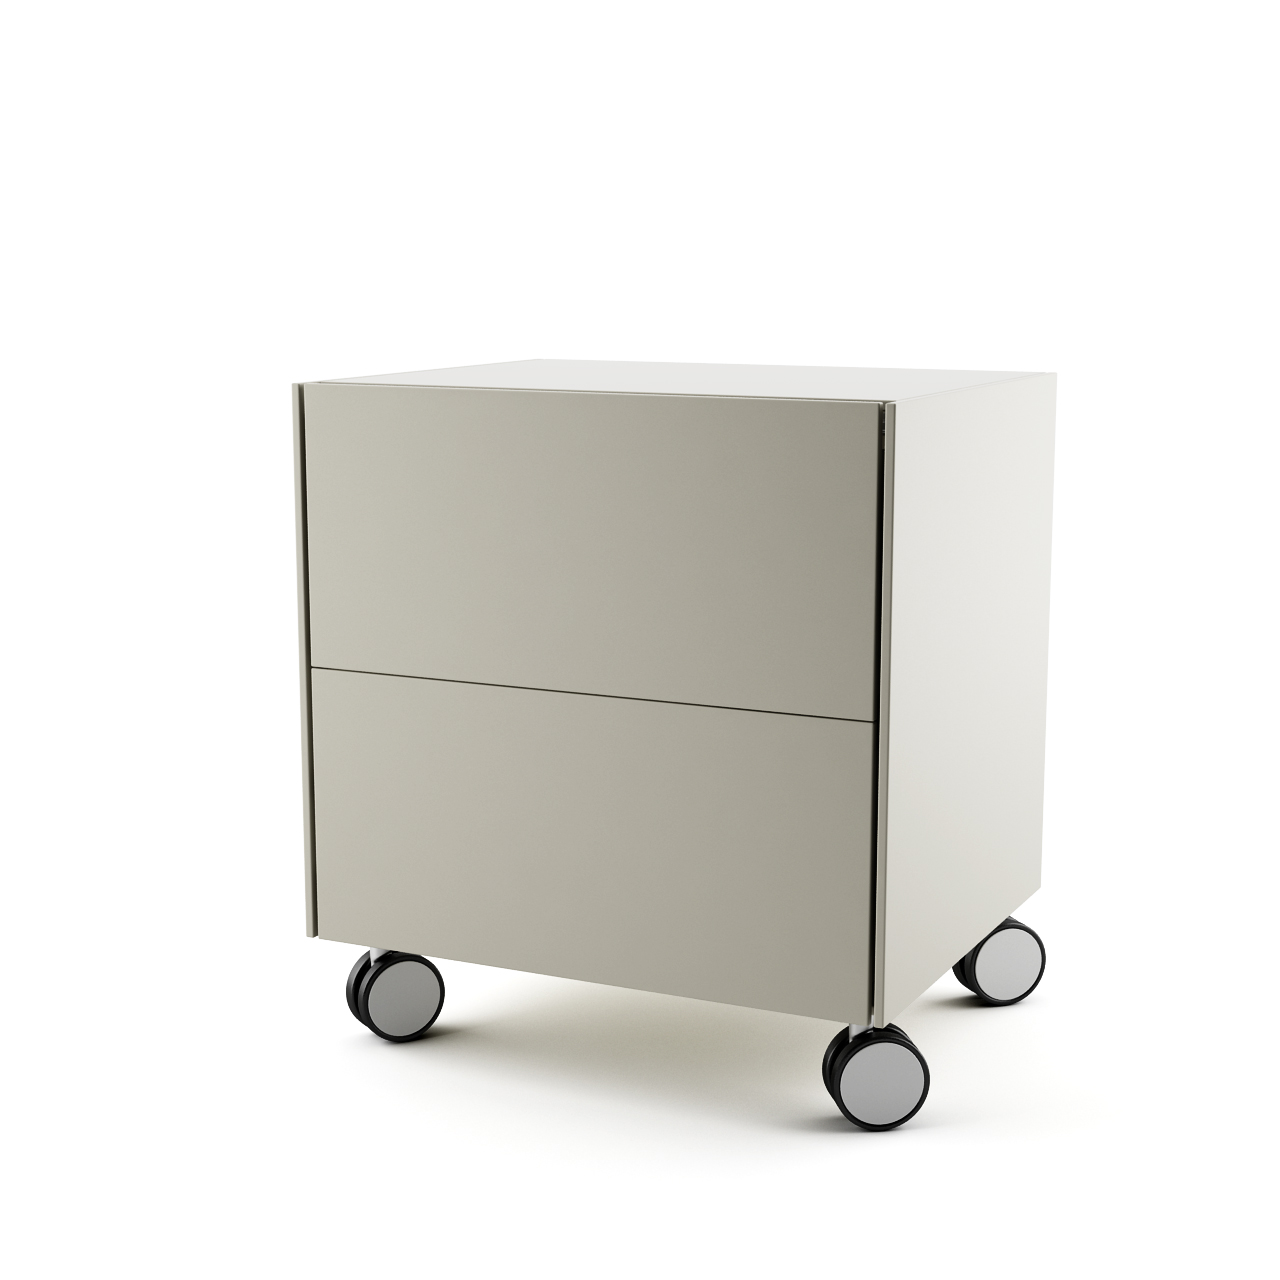 Air drawer by Gallotti&Radice